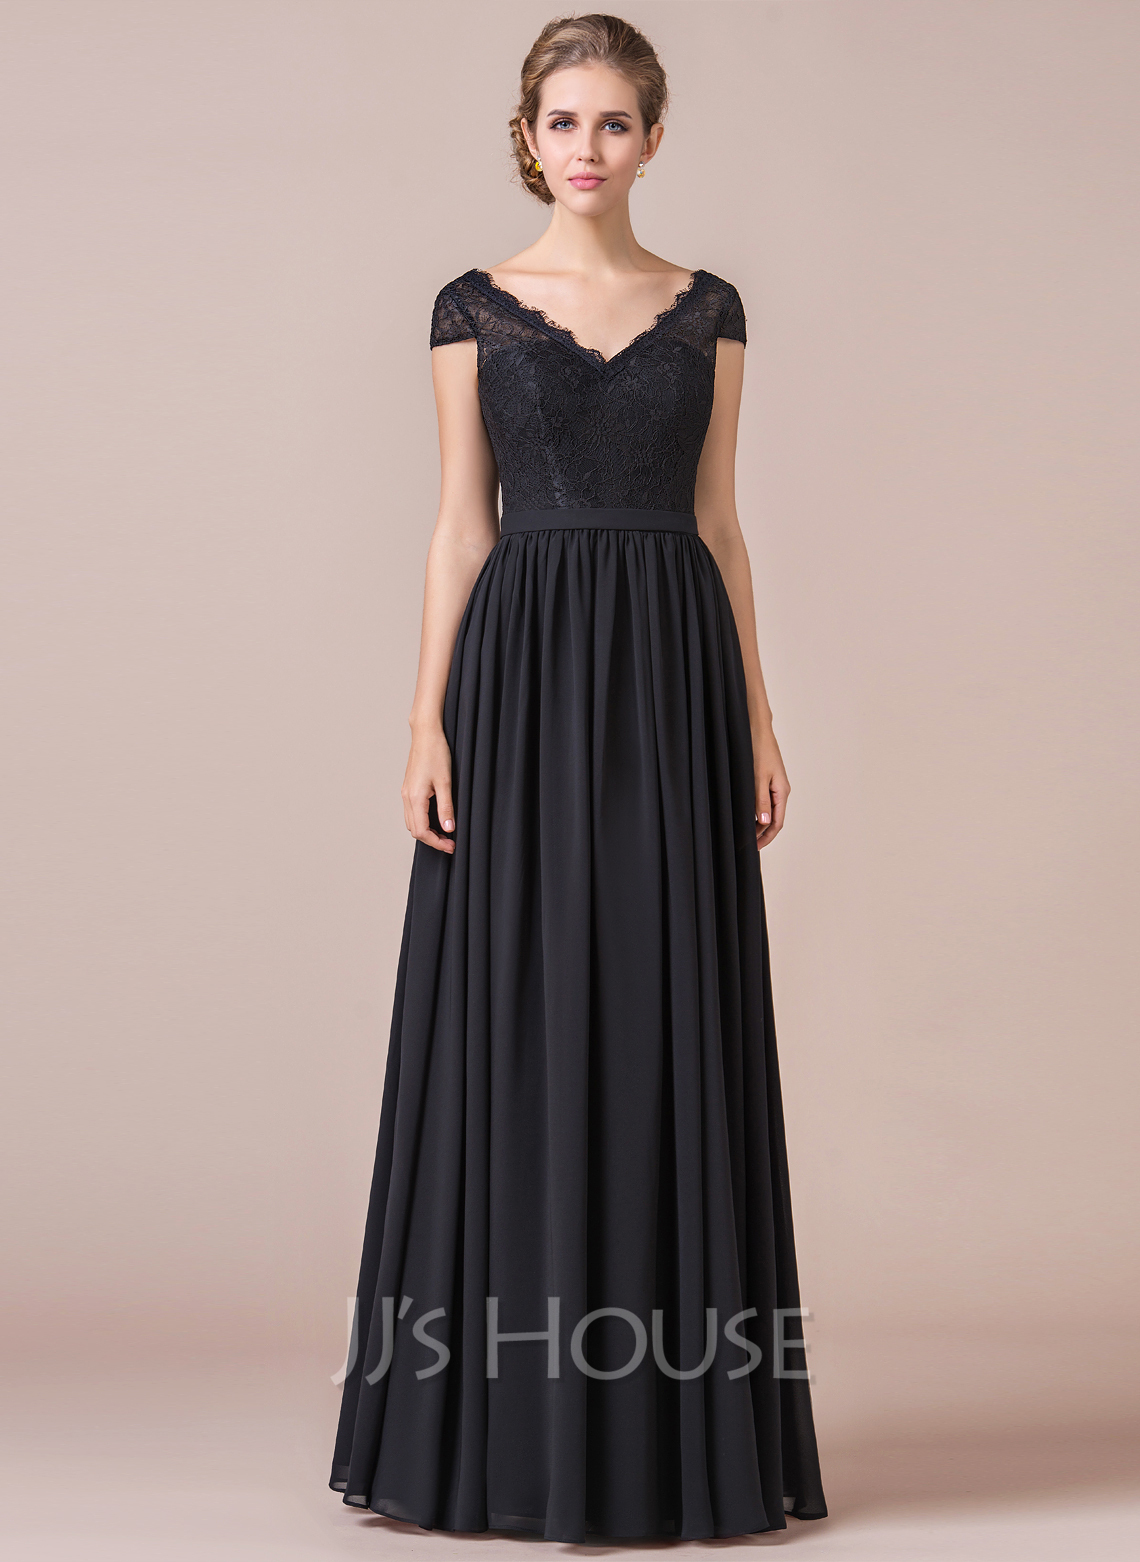 A lineprincess v neck floor length chiffon lace bridesmaid dress a lineprincess v neck floor length chiffon lace bridesmaid dress loading zoom ombrellifo Choice Image